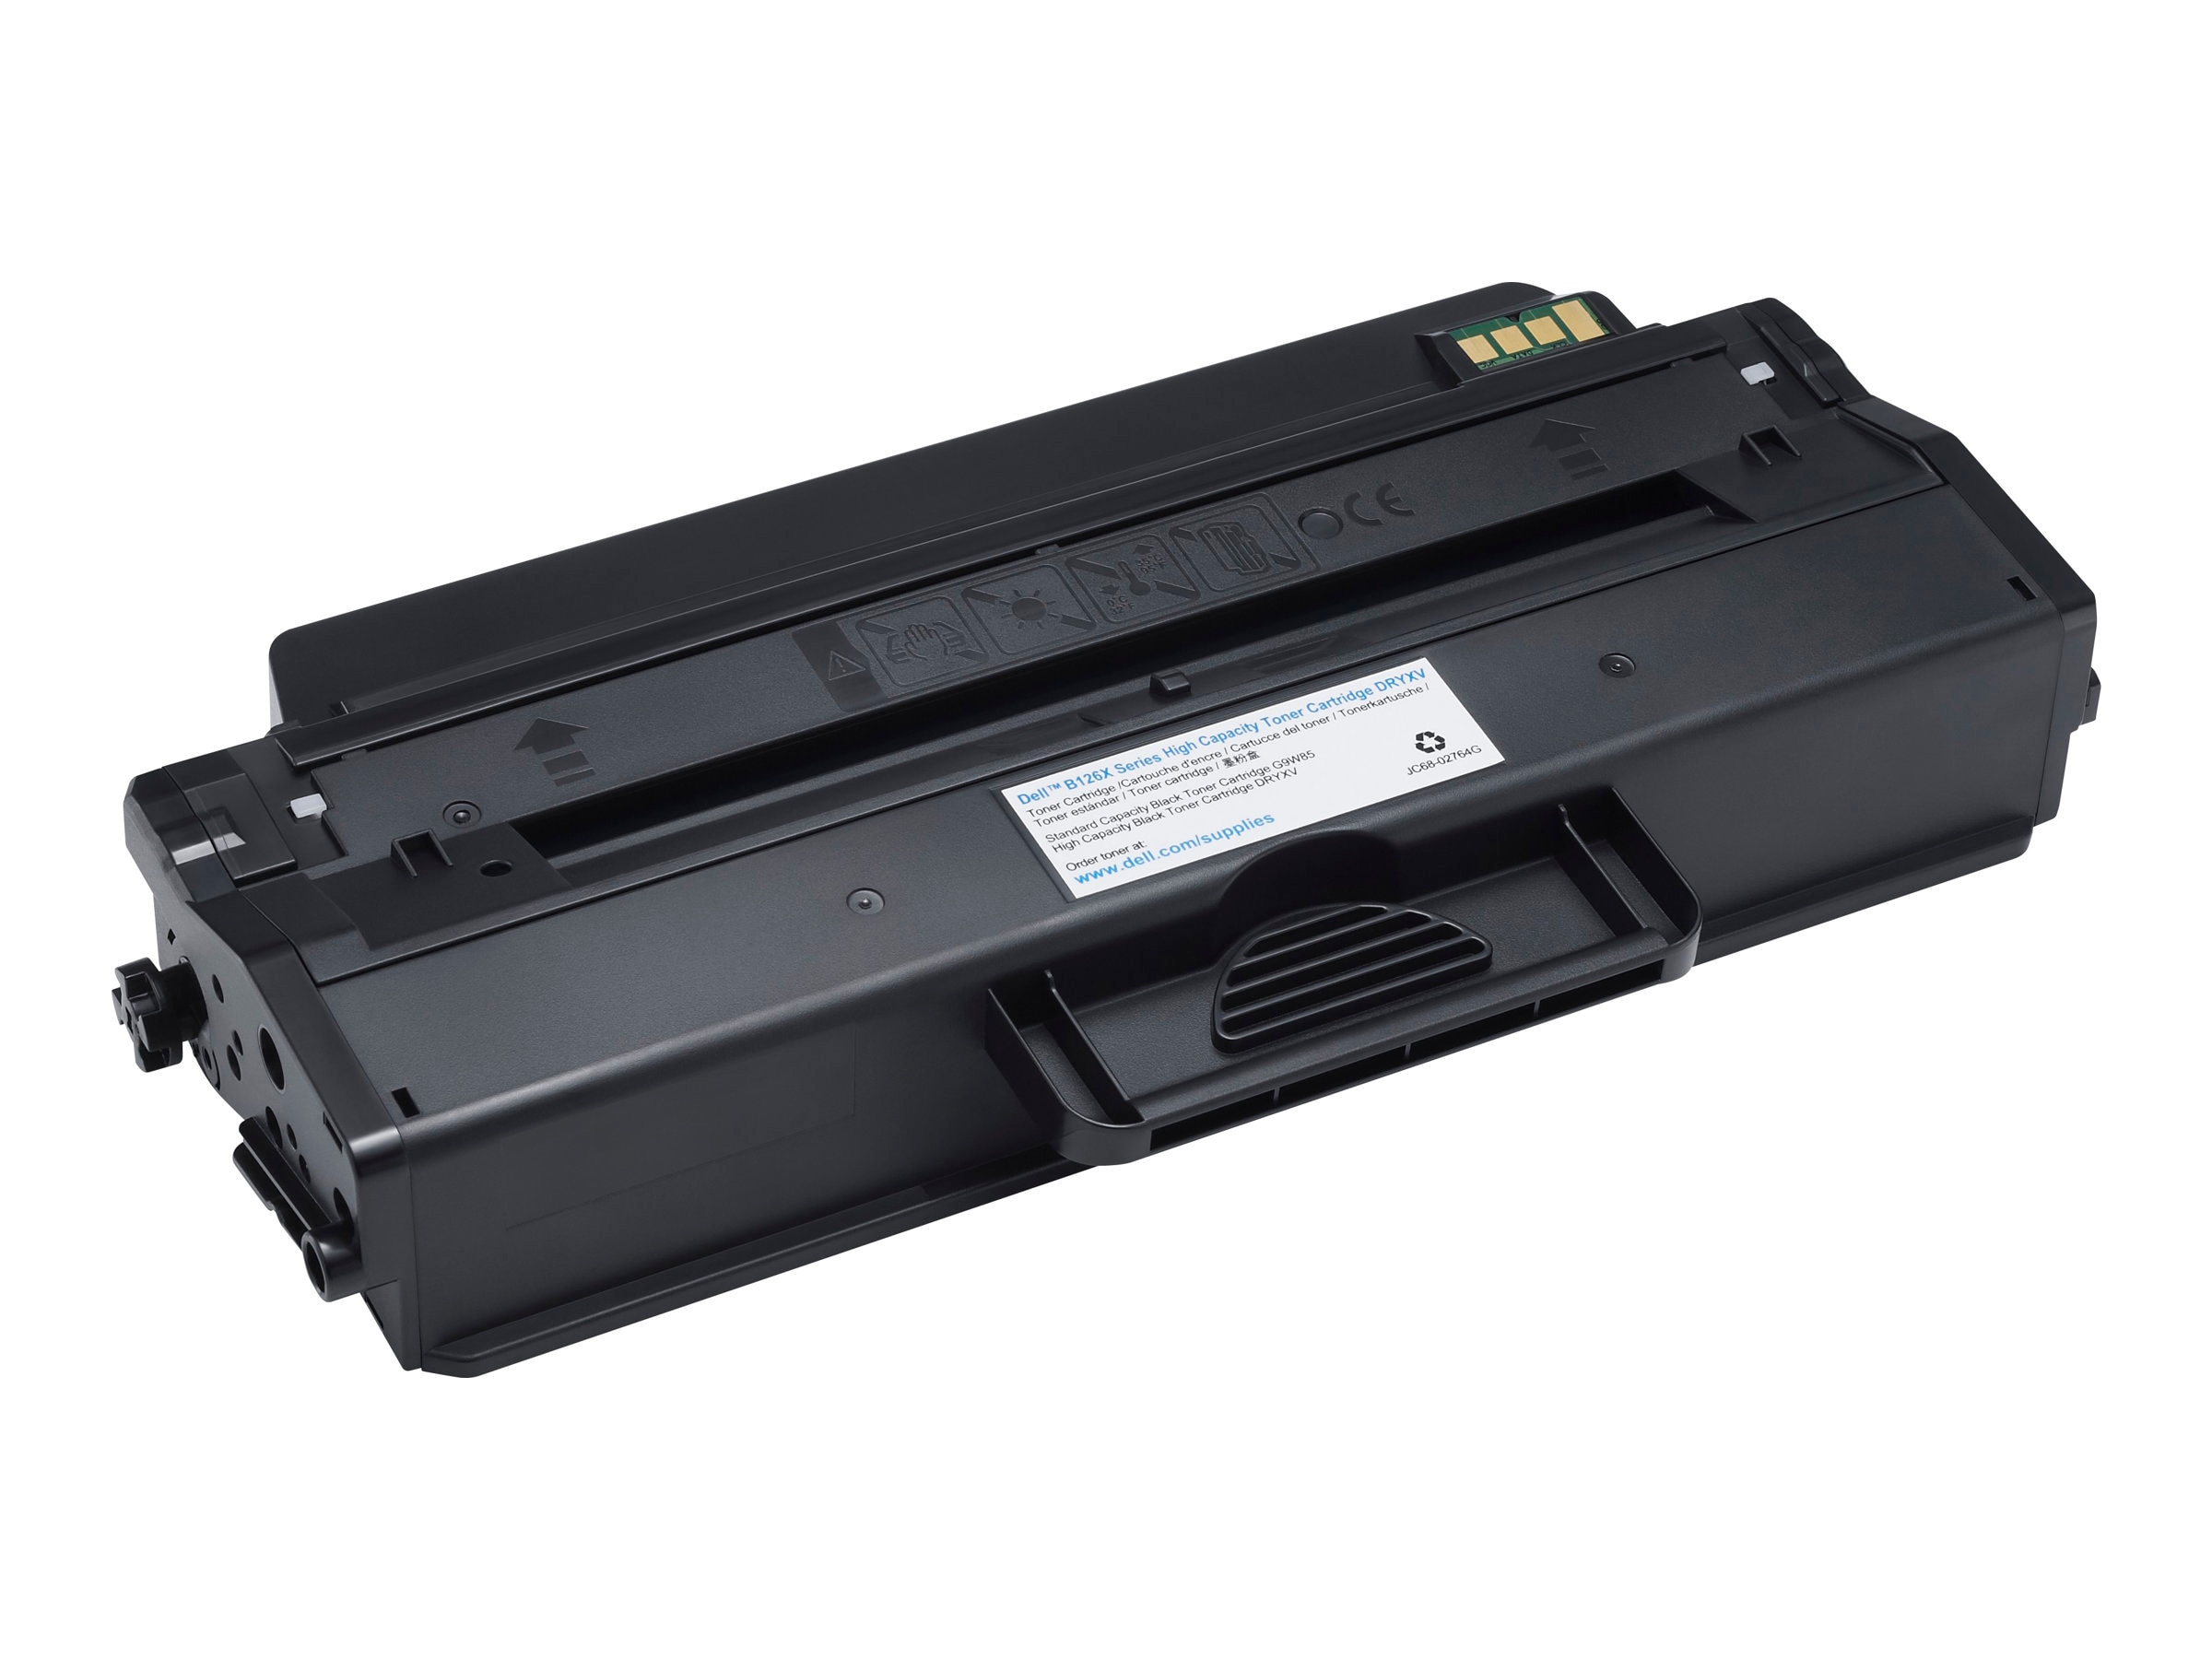 Dell Black Toner Cartridge for B1260dn  B1265dnf  B1265dfw Printers